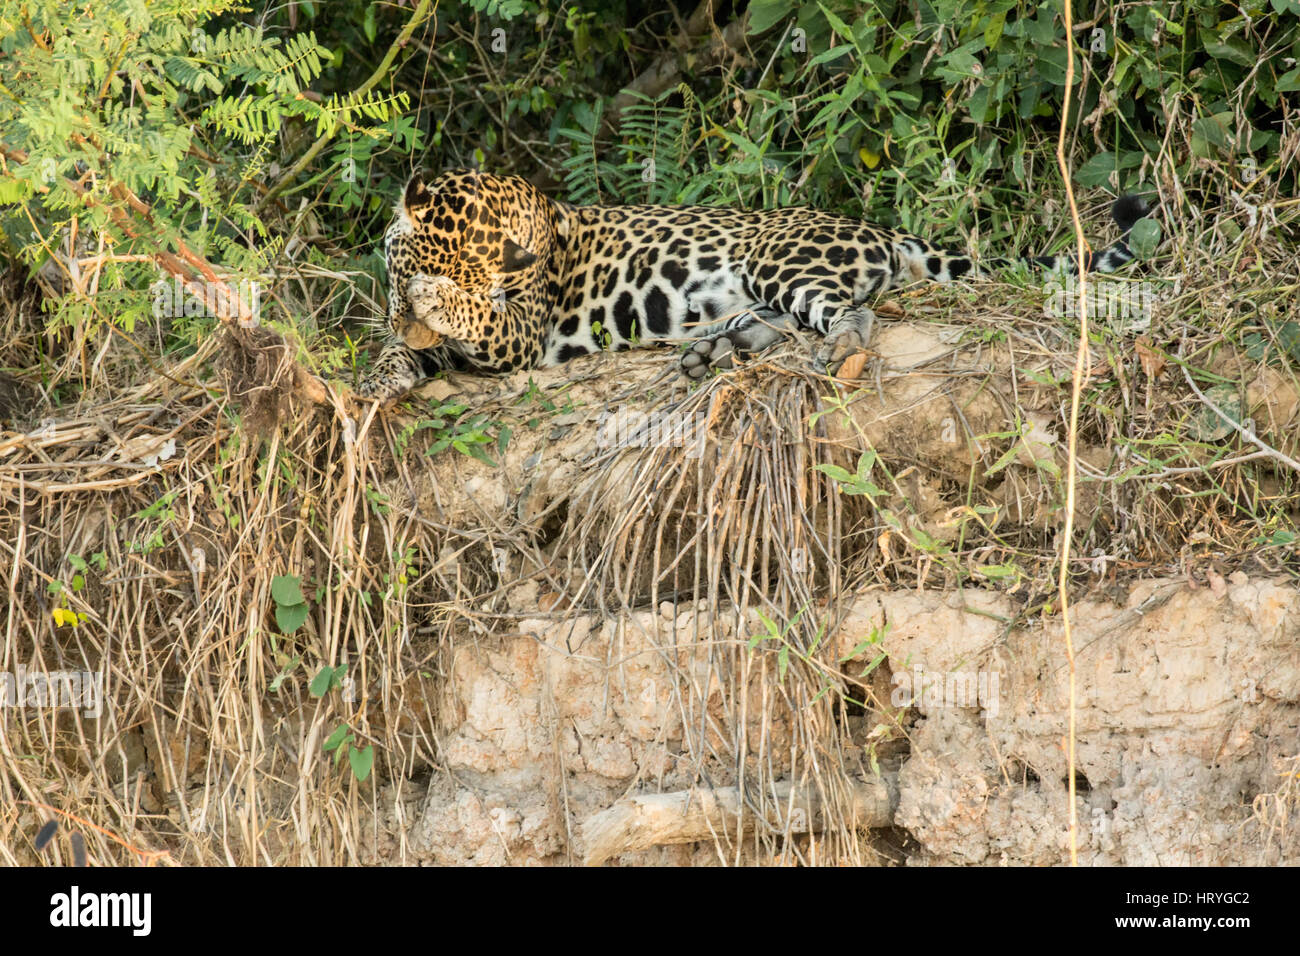 Jaguar looking shy as he covers his face while cleaning his paws in the heat of mid-day on a riverbank in the Pantanal - Stock Image